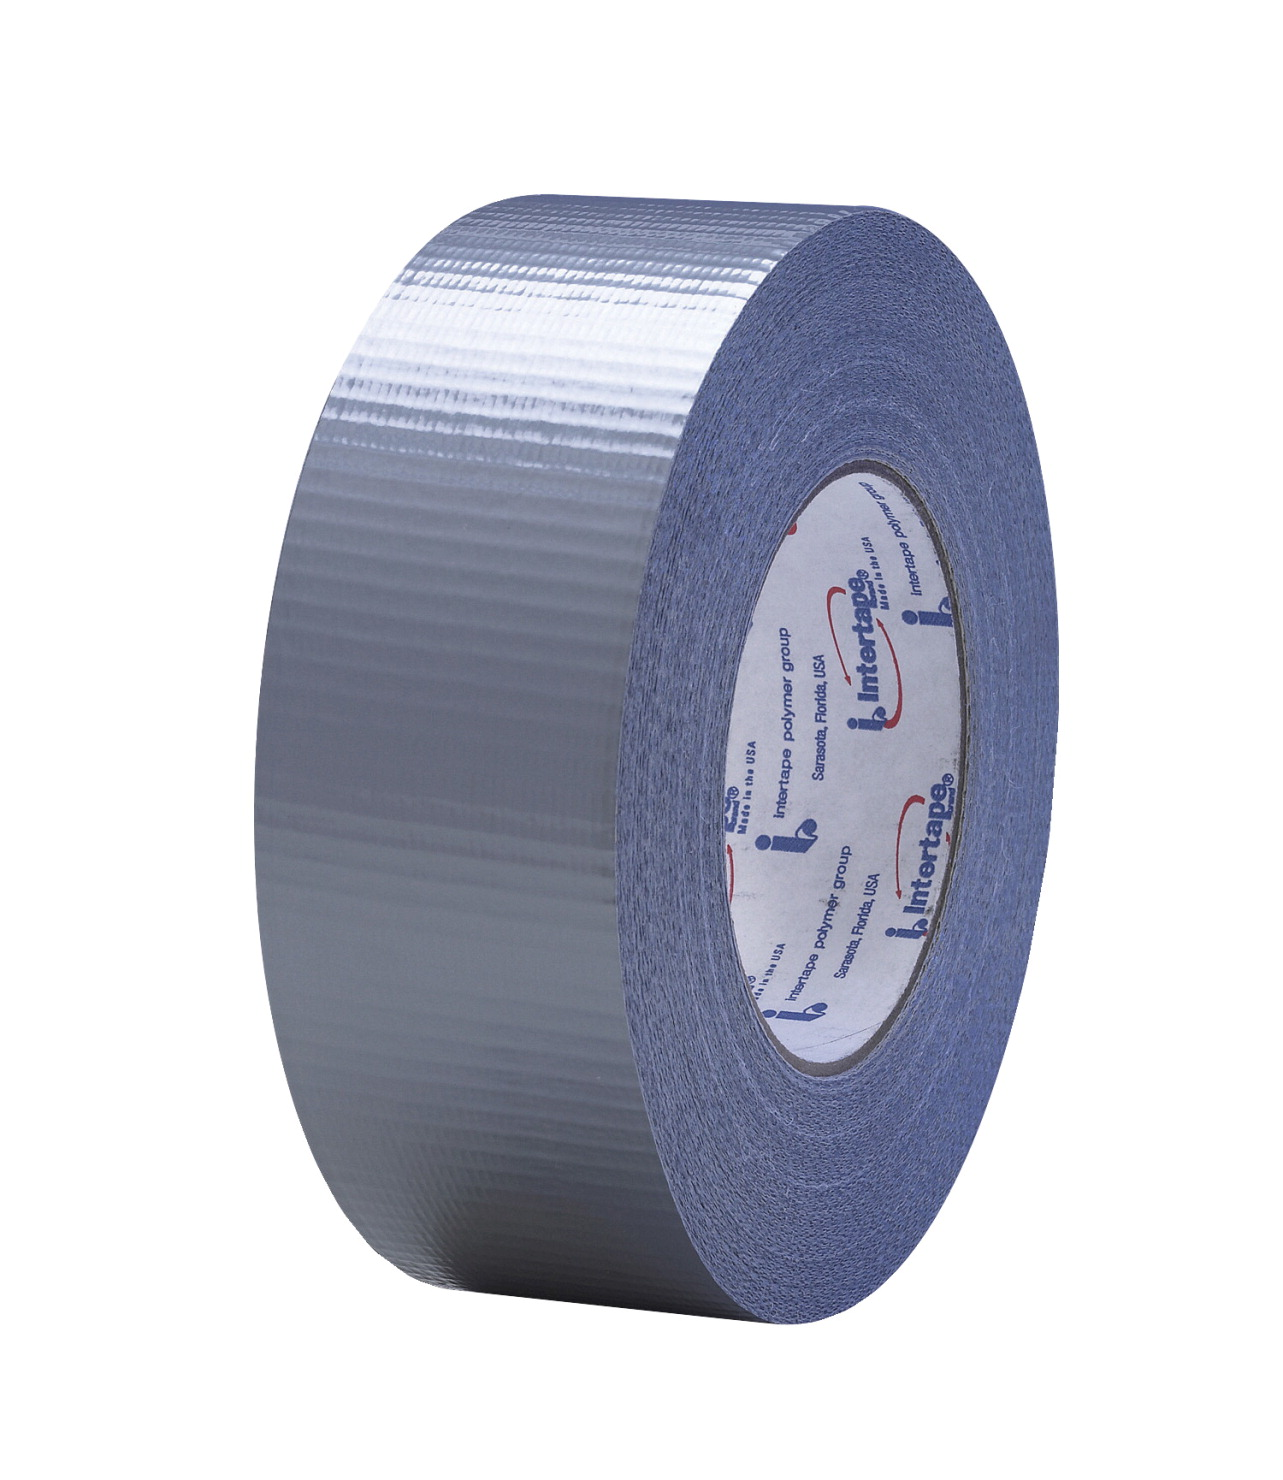 Intertape Polymer Natural Rubber/Resin Adhesive All Purpose Tear-Resistant Water Resistant Duct Tape, 48 mm X 54.8 m, Silver